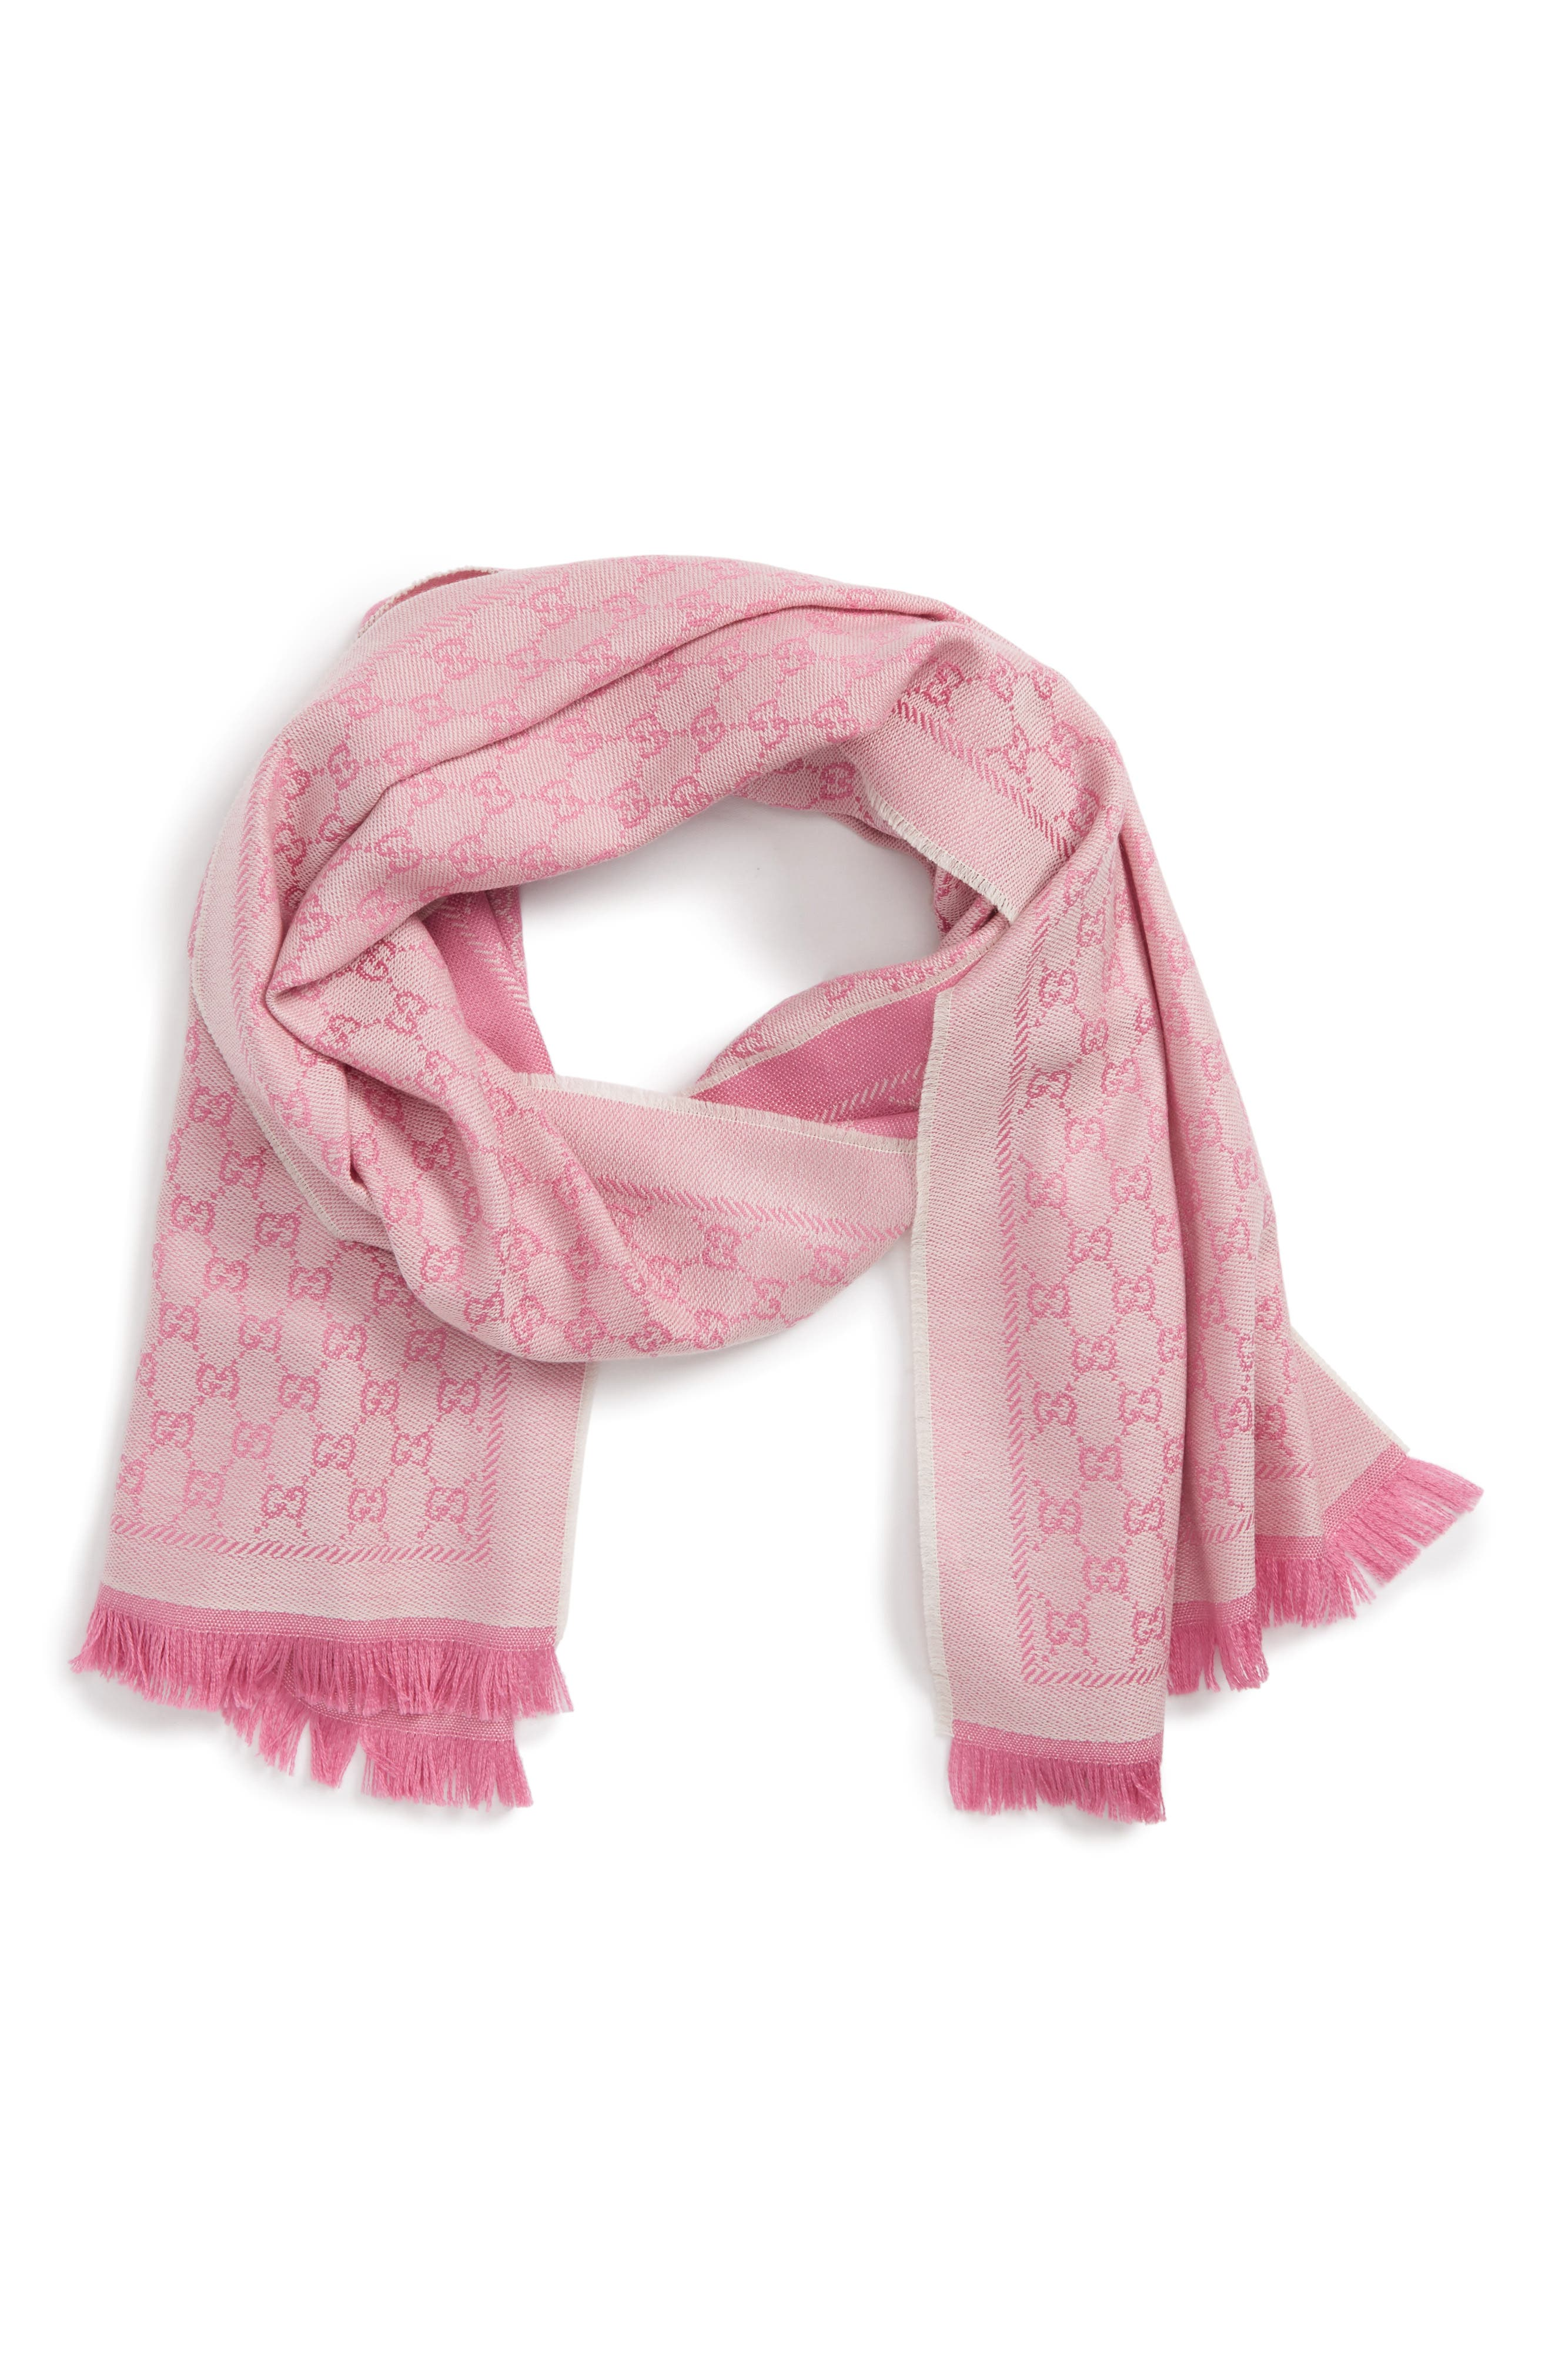 GG Jacquard Wool Scarf,                         Main,                         color, 900